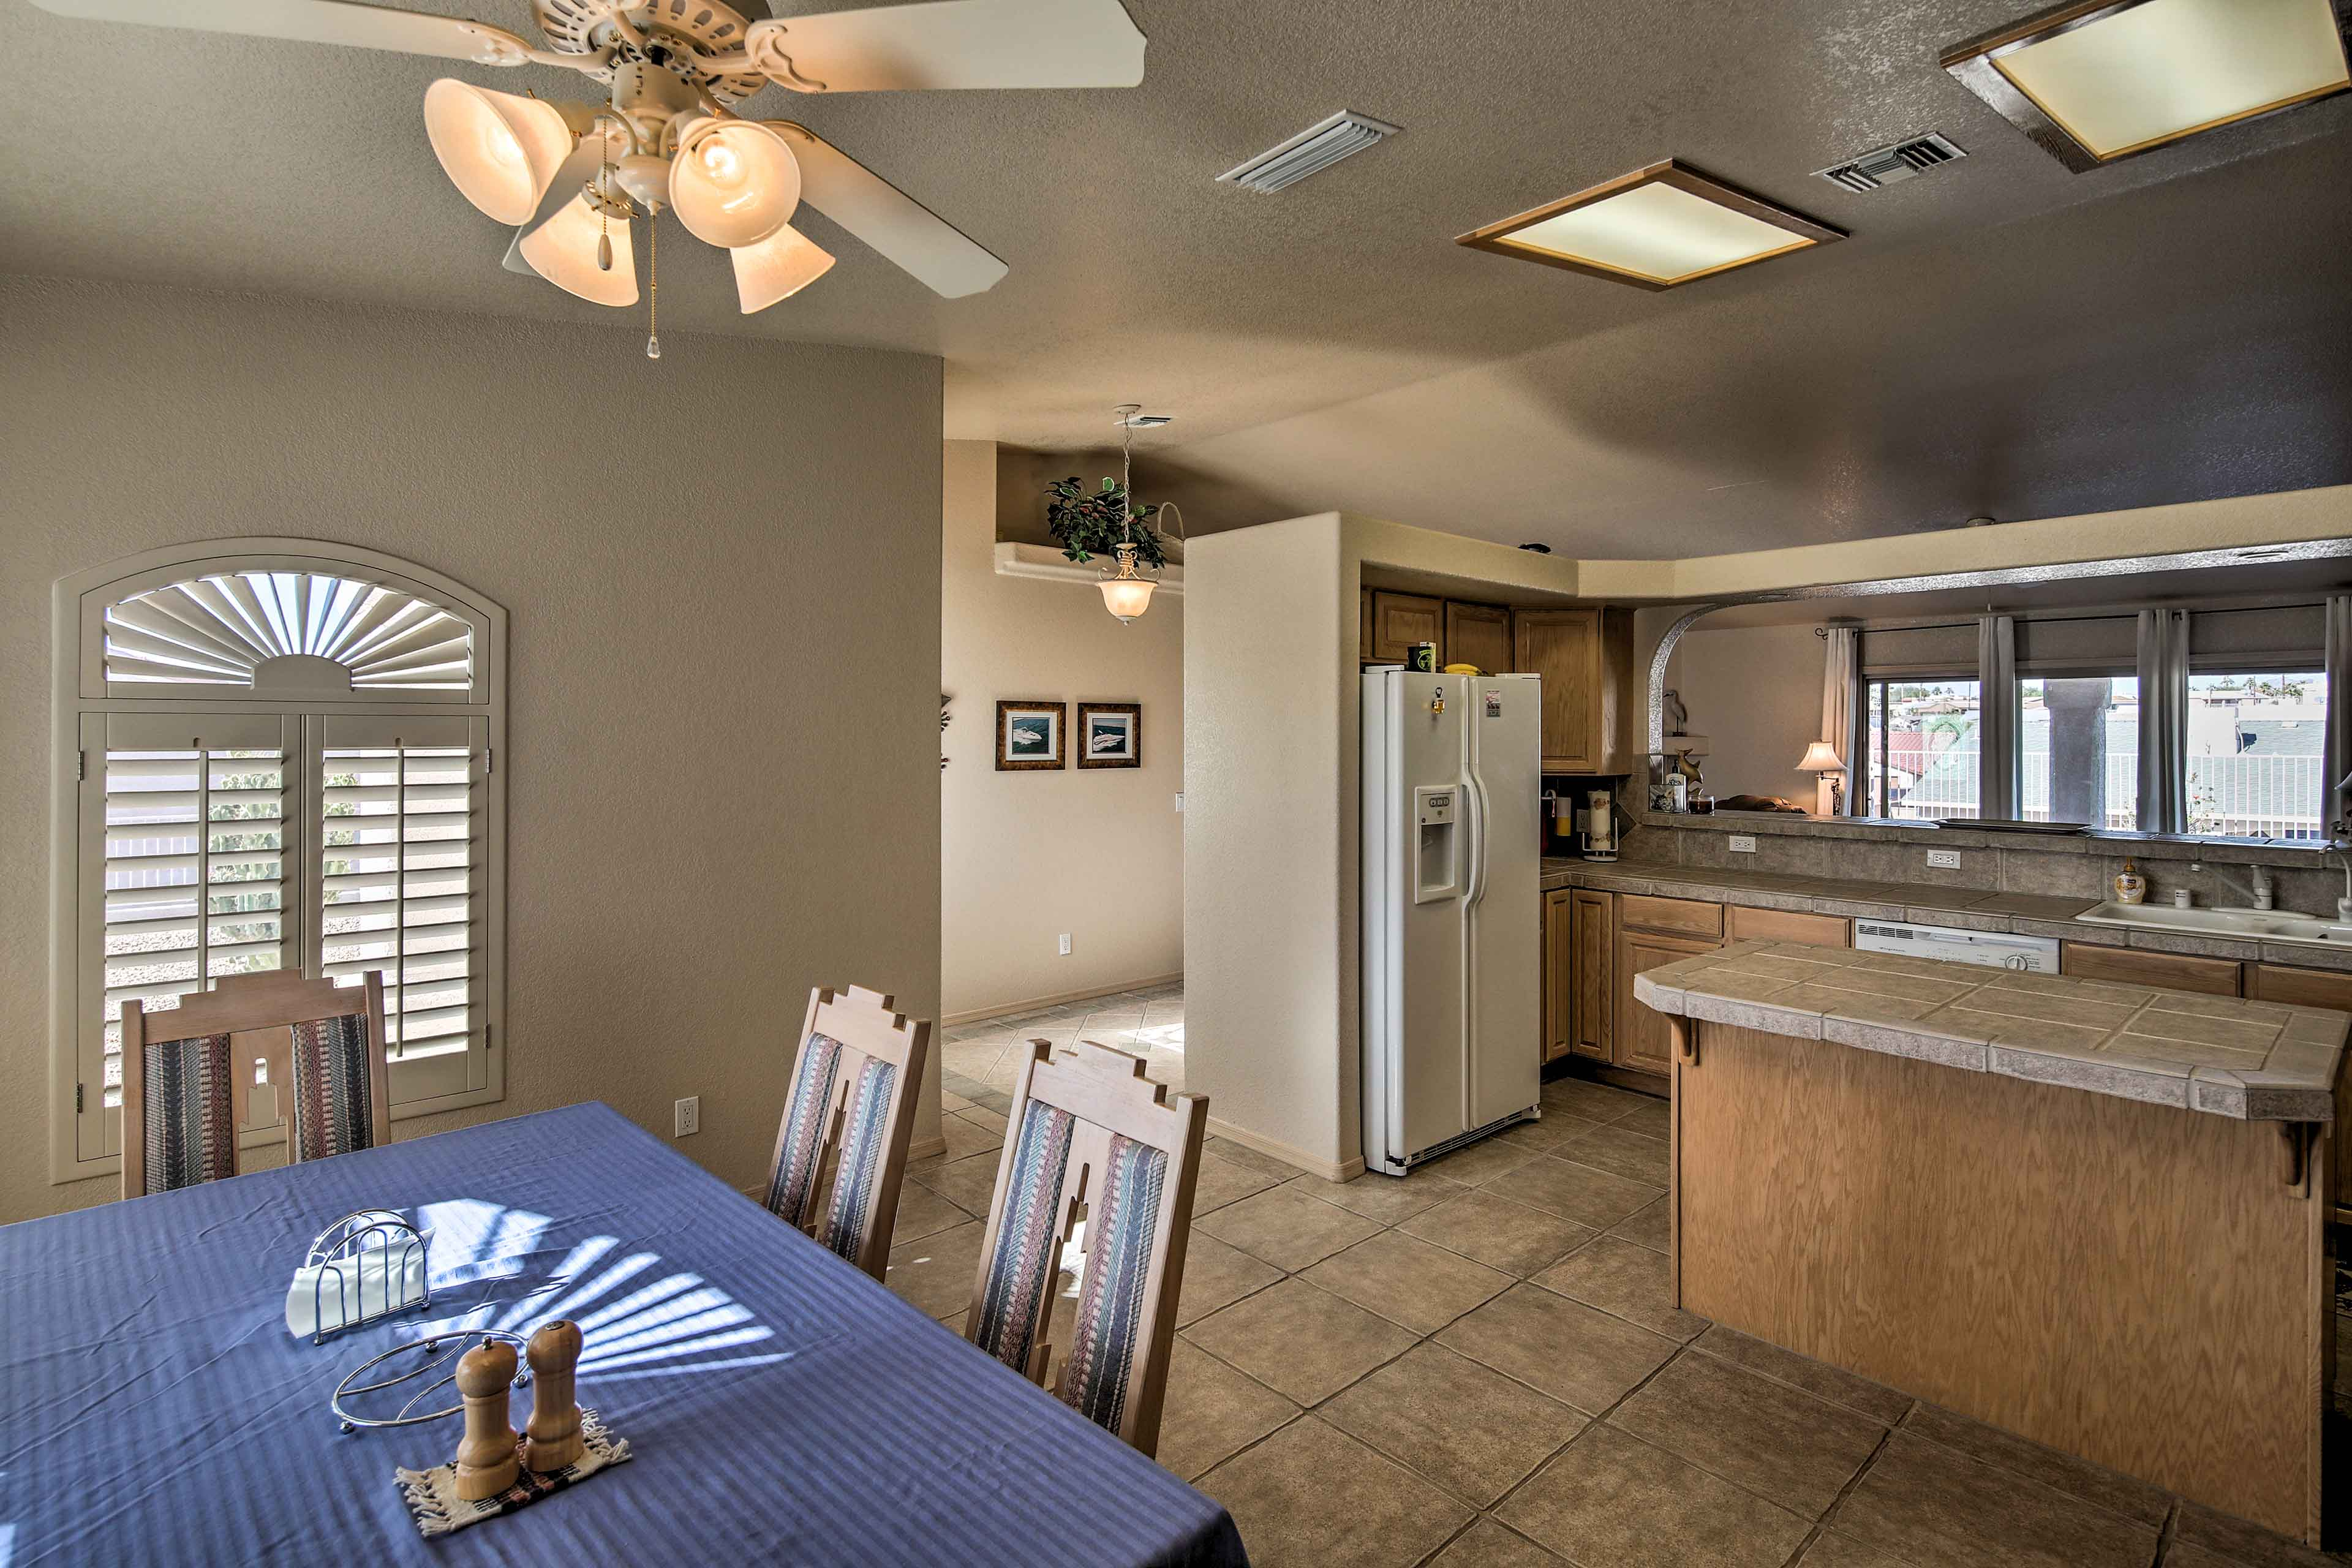 The kitchen and dining area perfectly coincide.